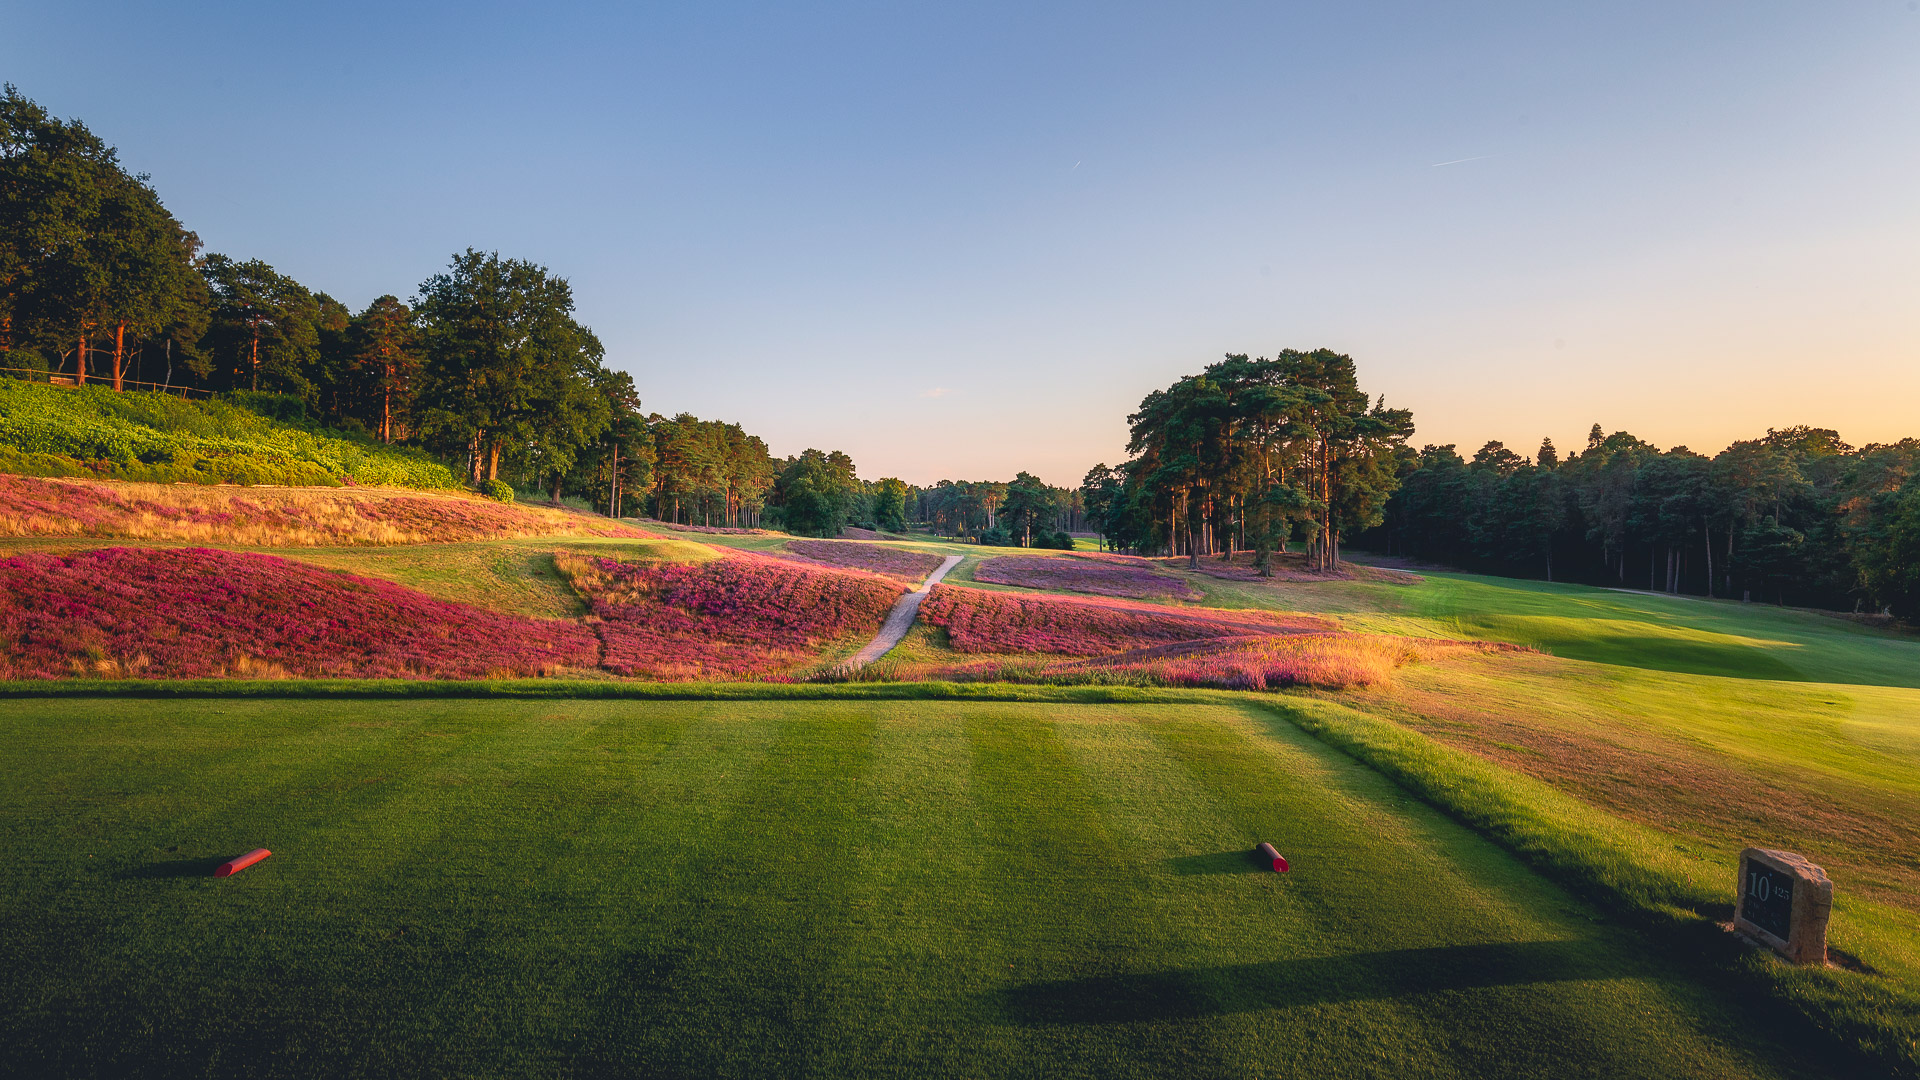 10th-Hole-St-Georges-Hill-Golf-Club-2288-Edit